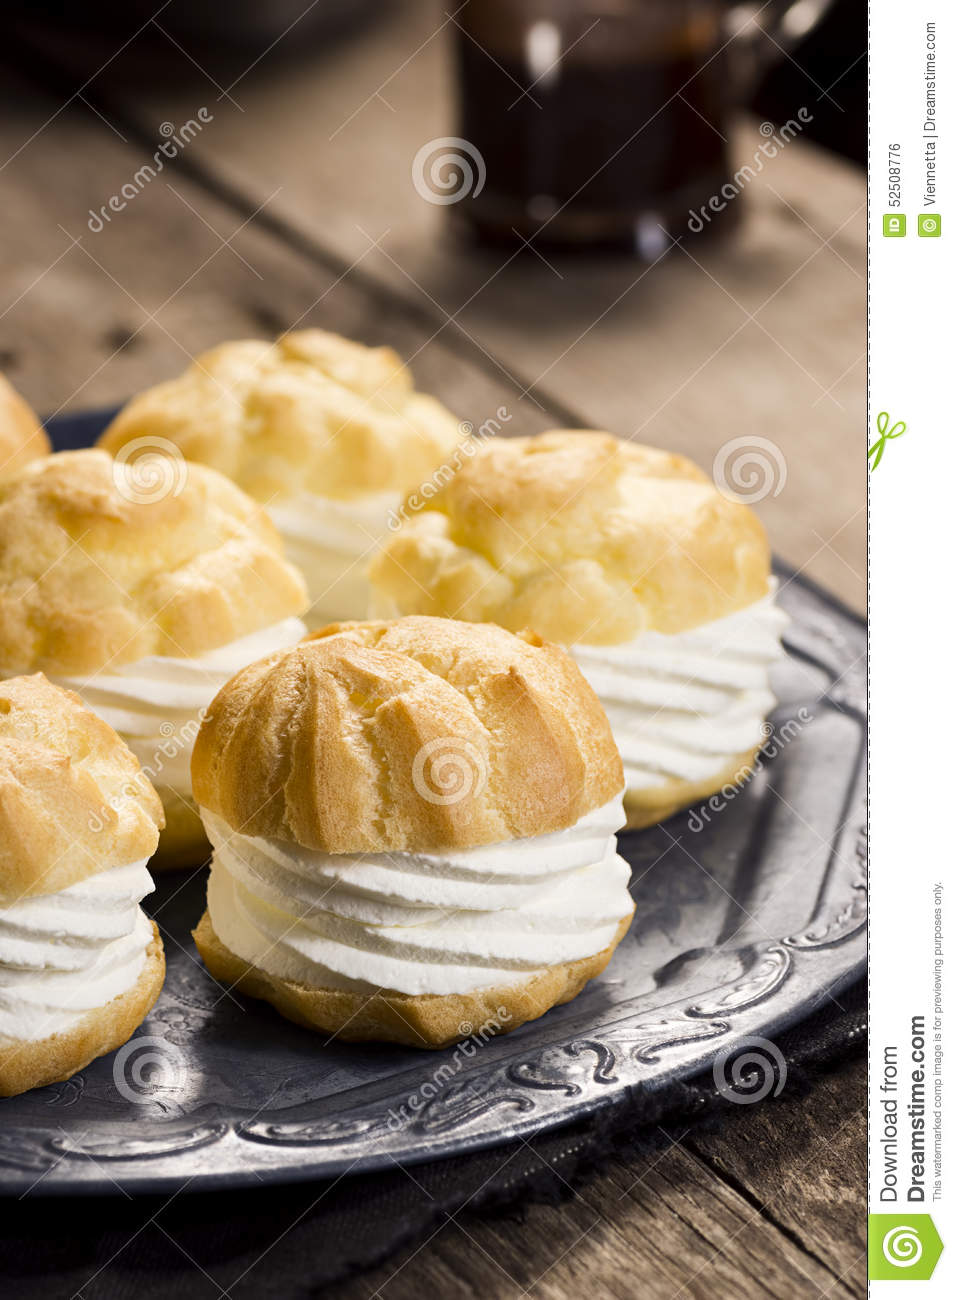 Profiteroles or Creampuffs are pastries made from baked creme a la ...